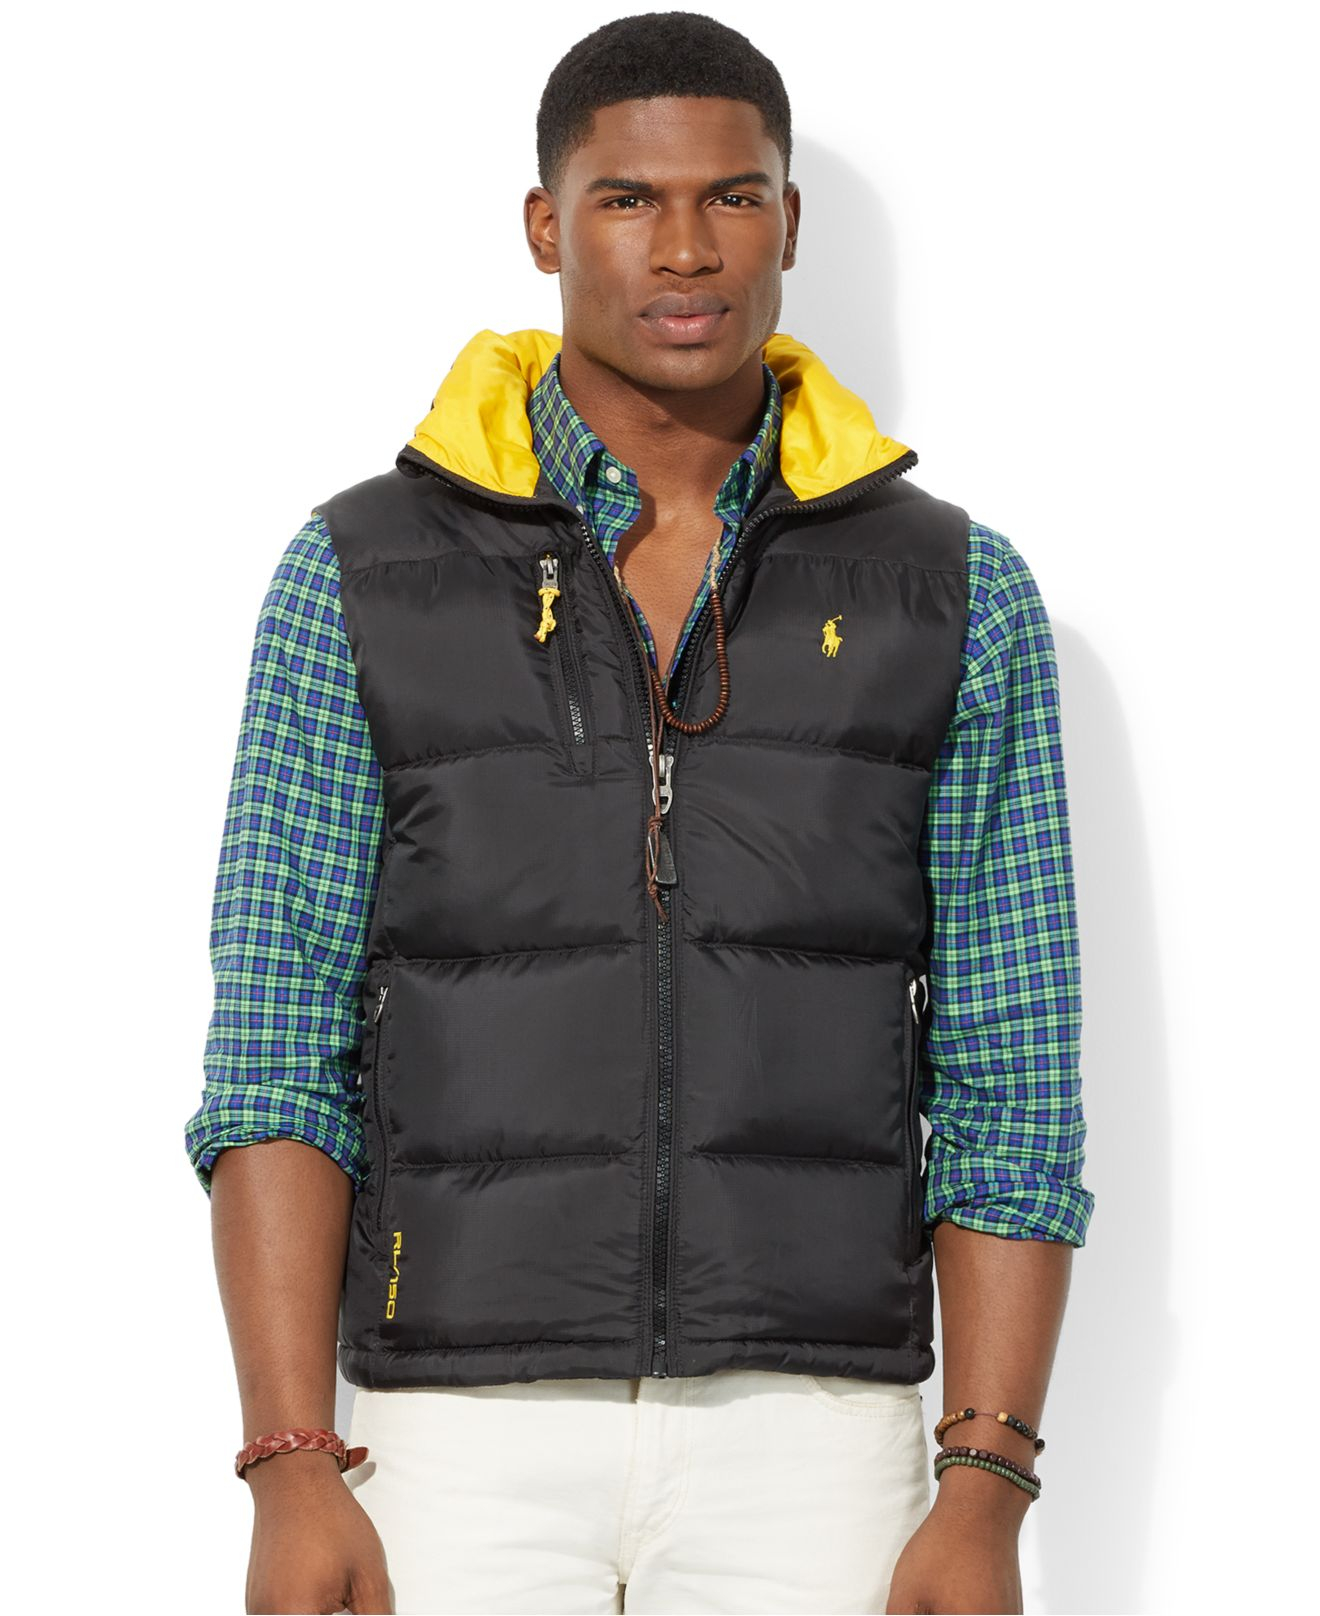 f8c2bf9ee89 Lyst - Polo Ralph Lauren Color-Blocked Quilted Trek Vest in Black ...